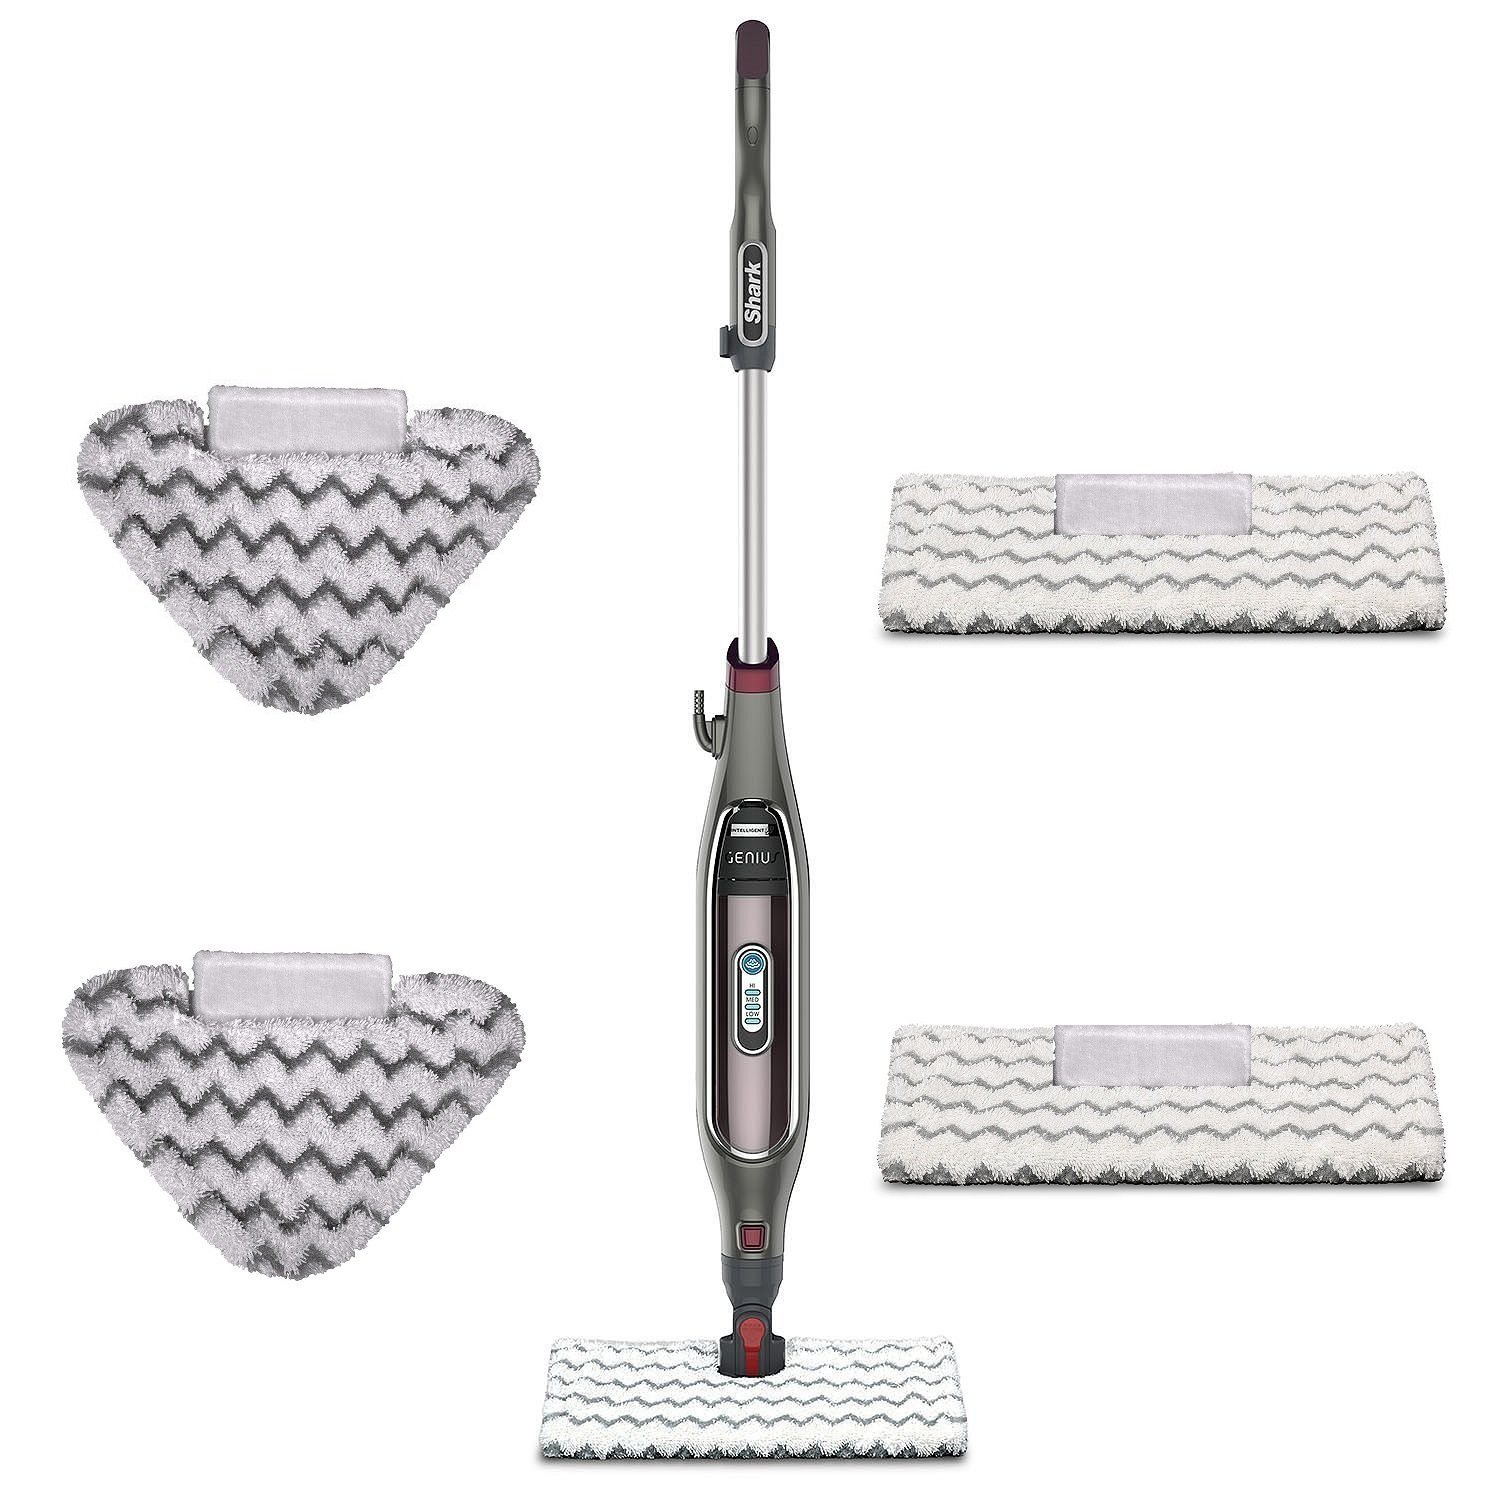 Shark Genius Steam Pocket Mop System. with Shark Intelligent Steam Control, Shark's Steam Blaster technology, Touch-Free Technology, Bonus of 2 Triangle Scrubber Heads and Pads